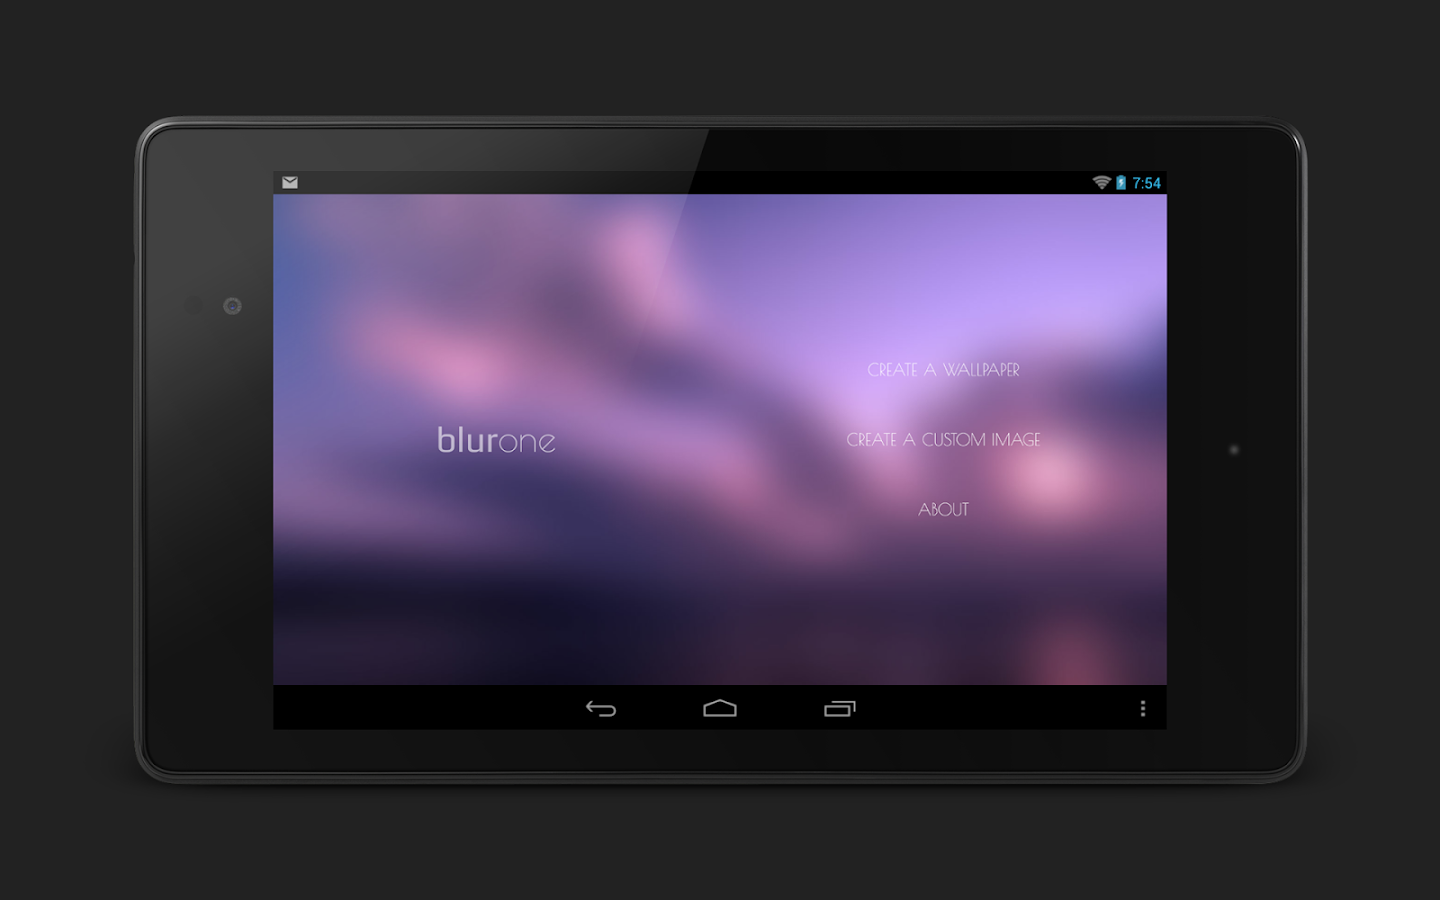 Blurone -Blur effect wallpaper - screenshot